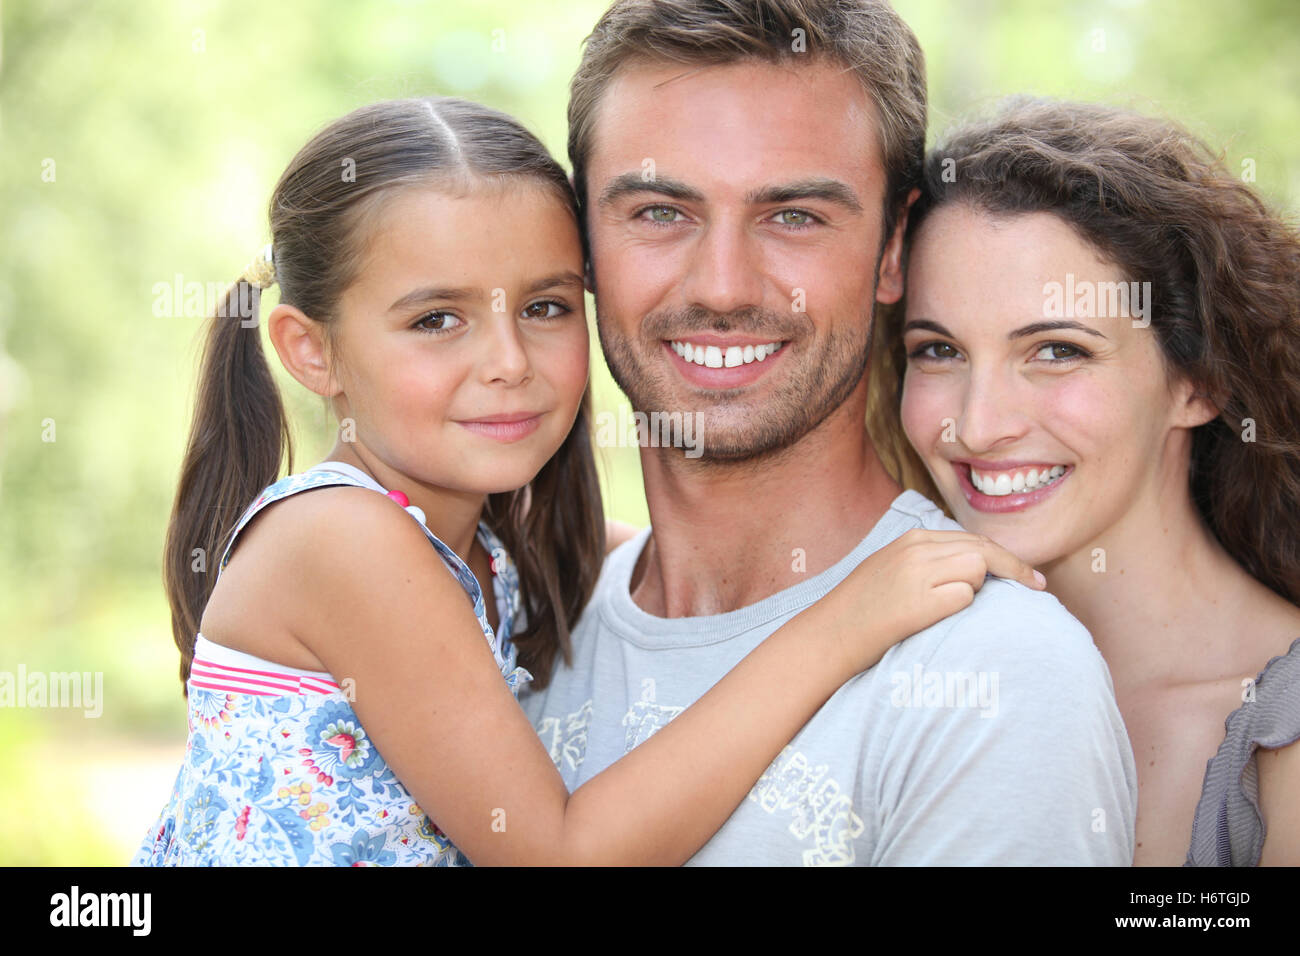 adult, adults, delighted, unambitious, enthusiastic, merry, radiant with joy, - Stock Image